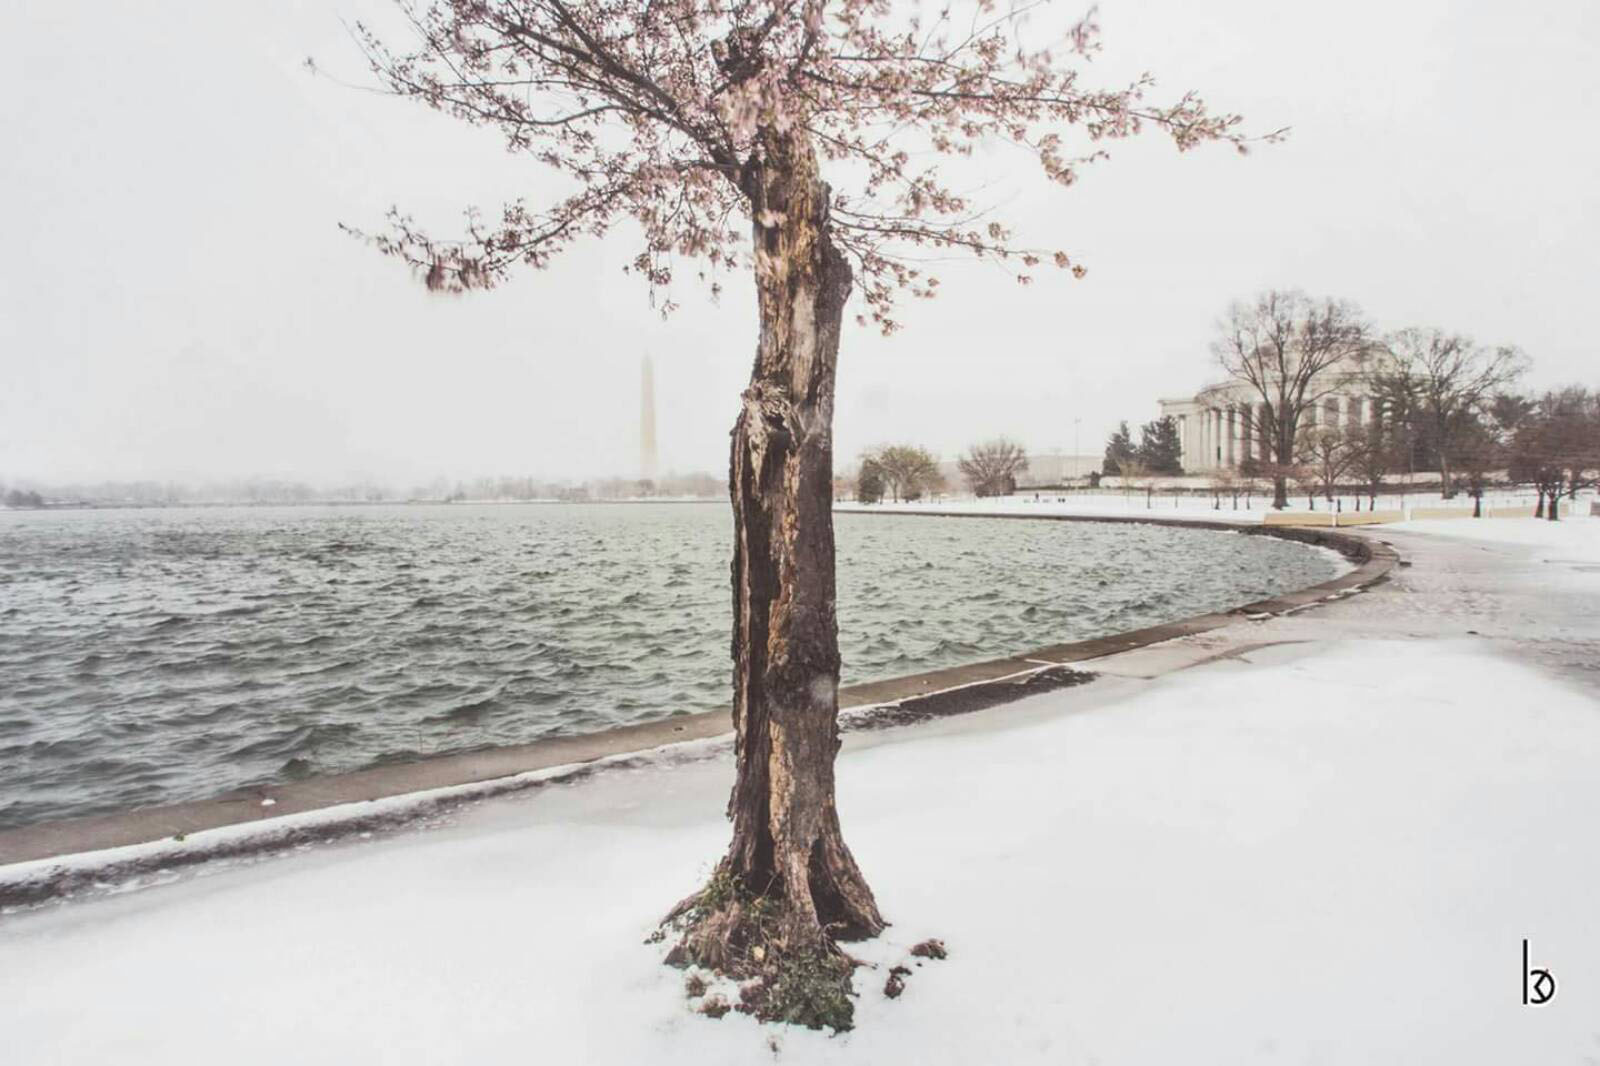 Cherry Blossoms in the snow on March 14, 2017. (Courtesy Billy Khuong)